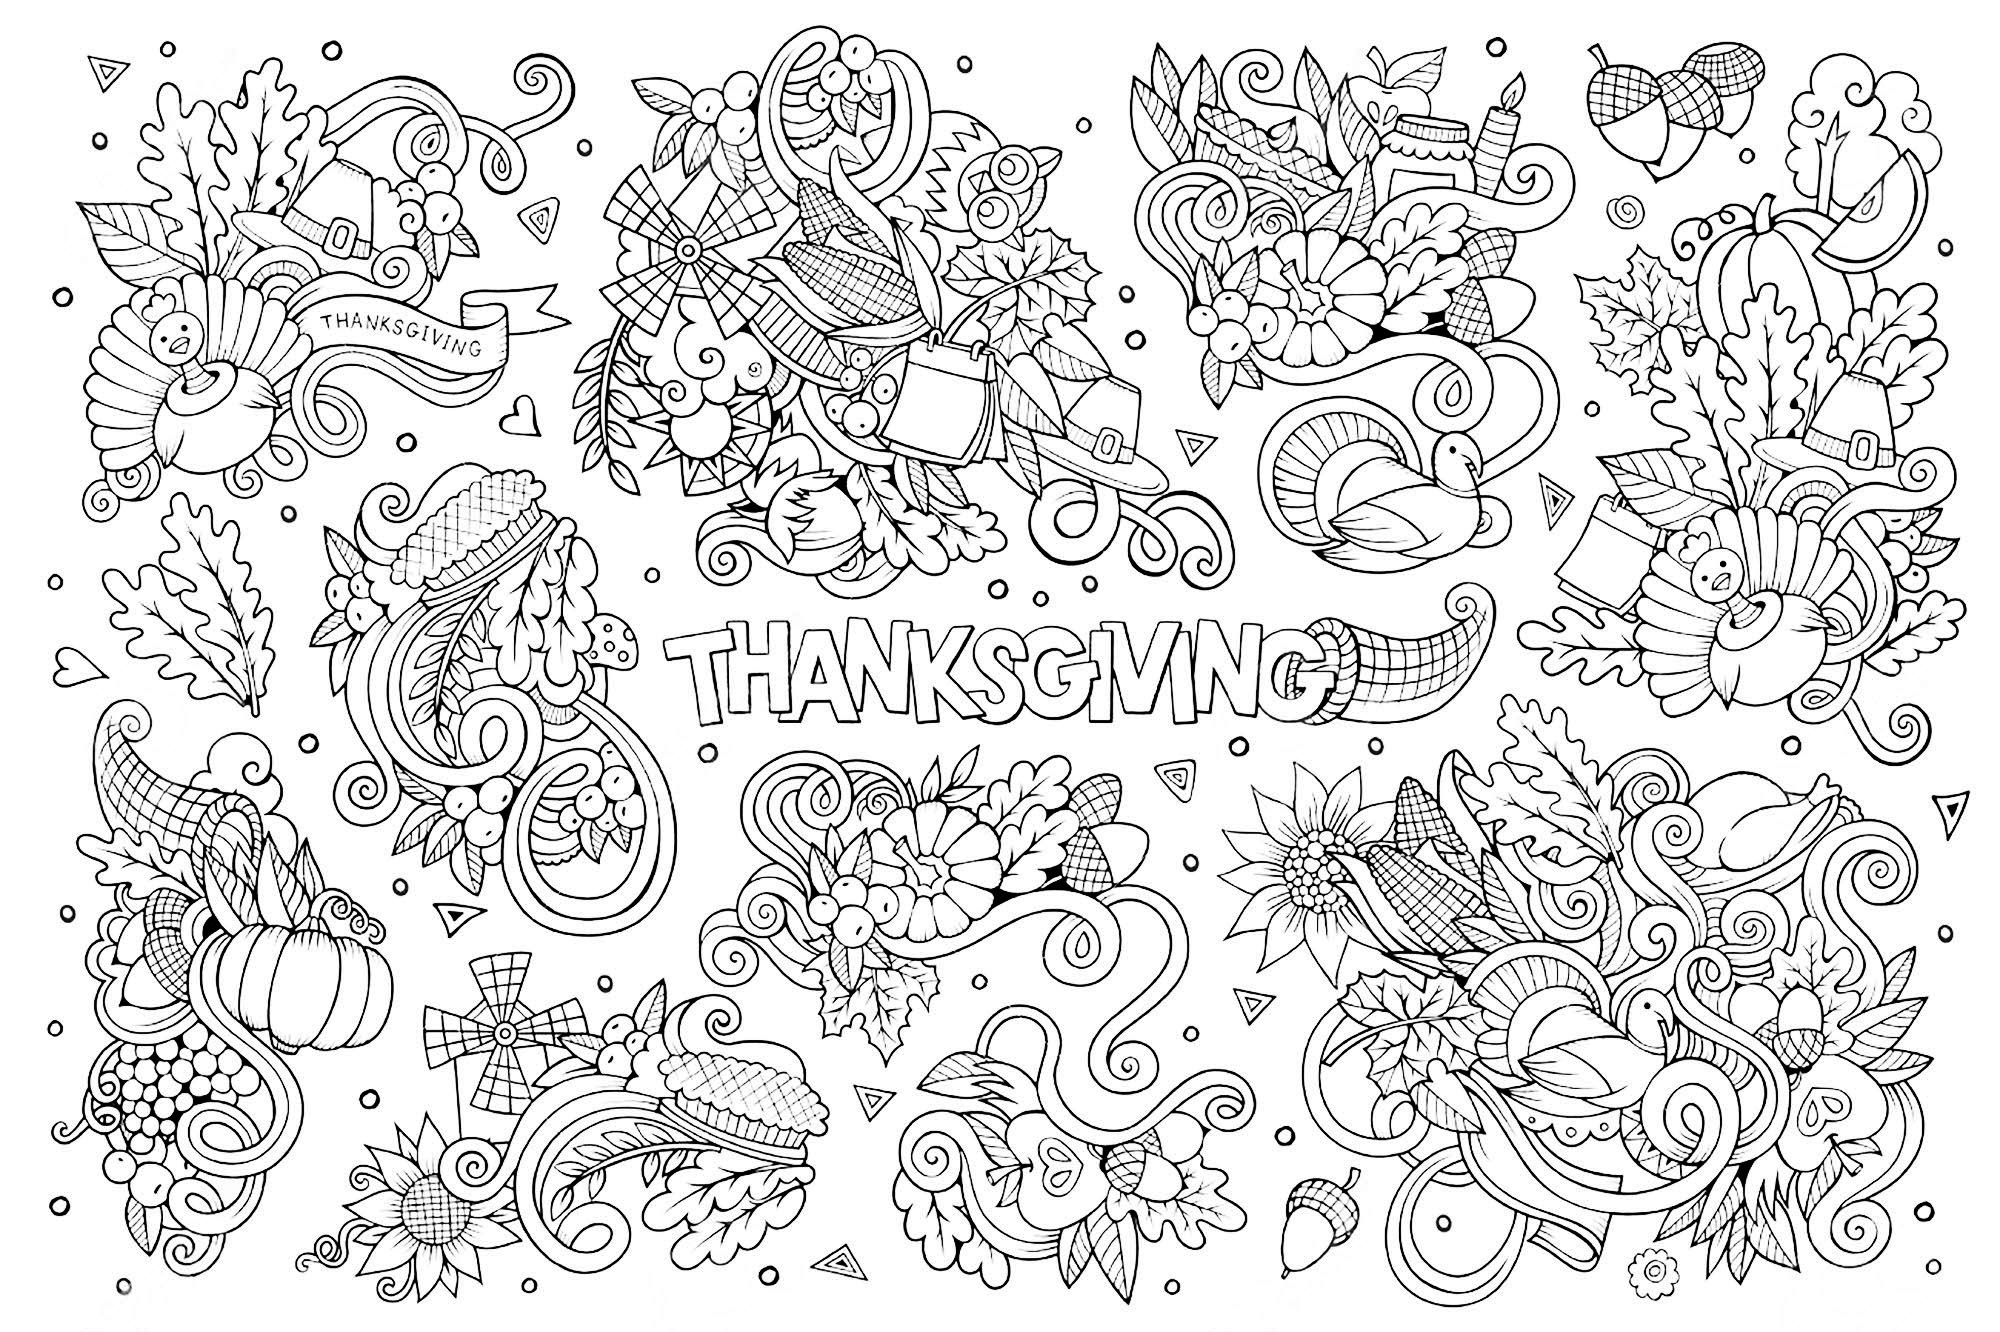 FREE Thanksgiving Coloring Pages for Adults Kids